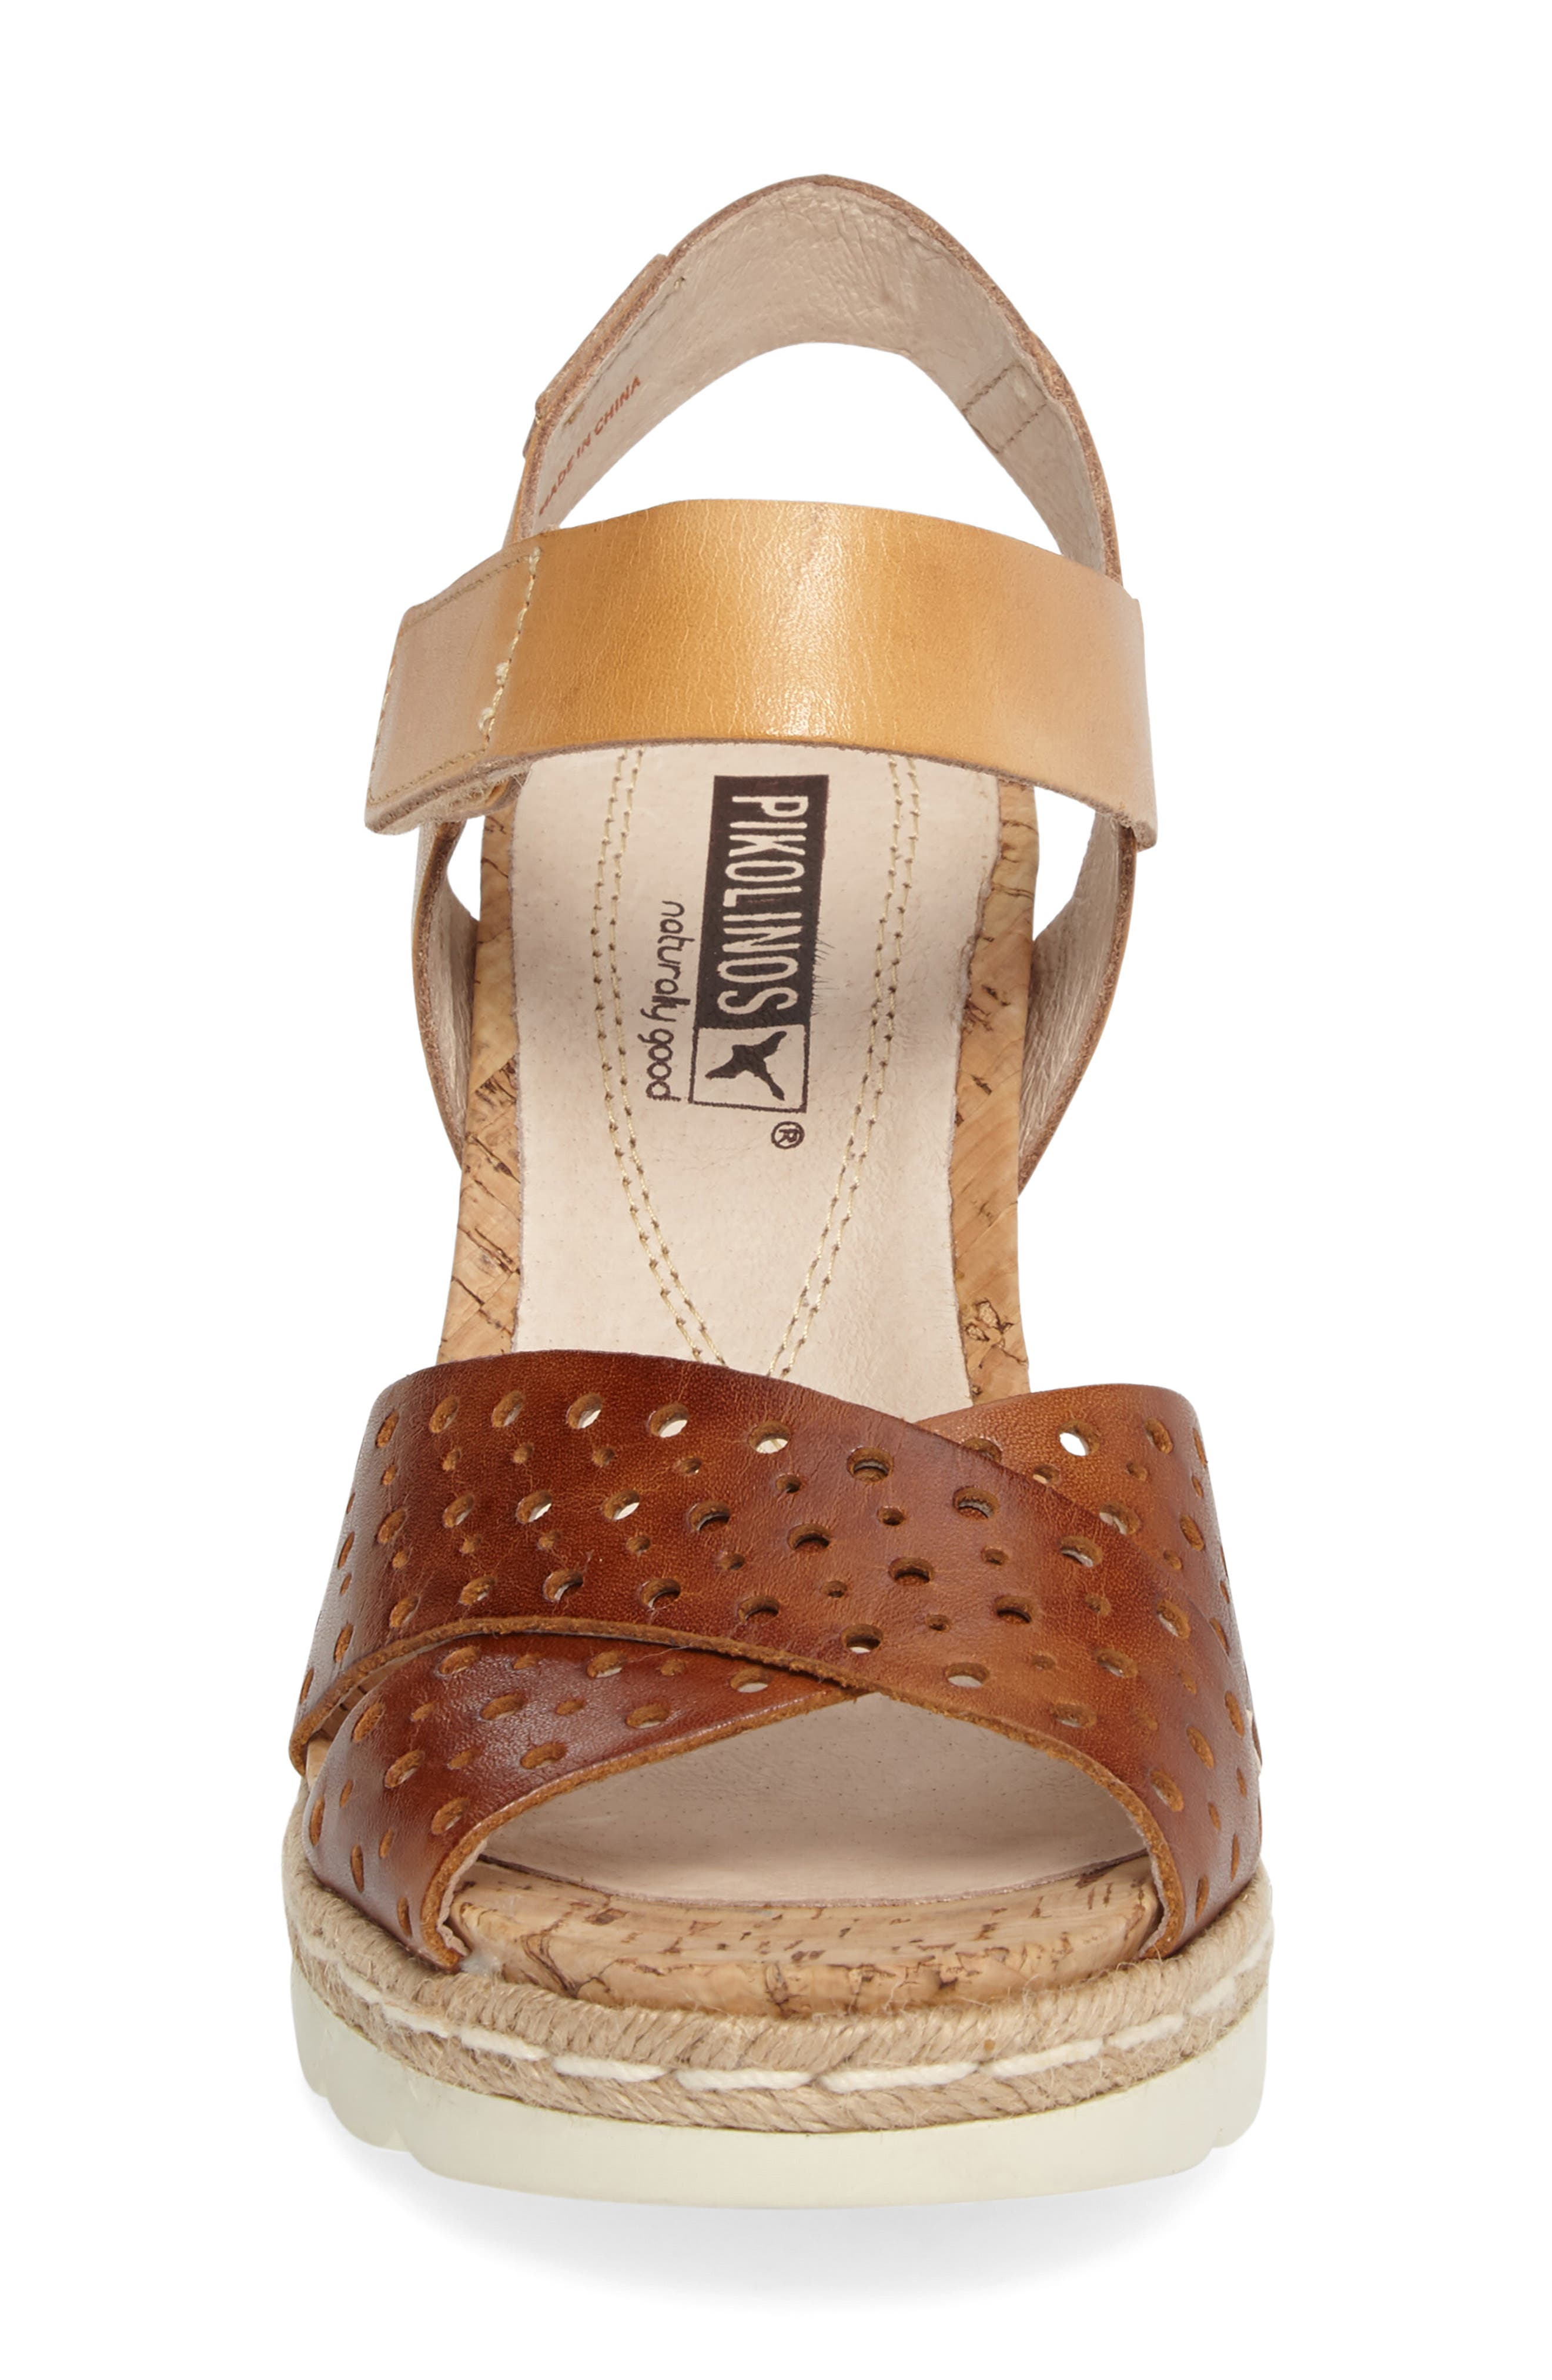 Bali Wedge Sandal,                             Alternate thumbnail 4, color,                             BRANDY CAMEL LEATHER